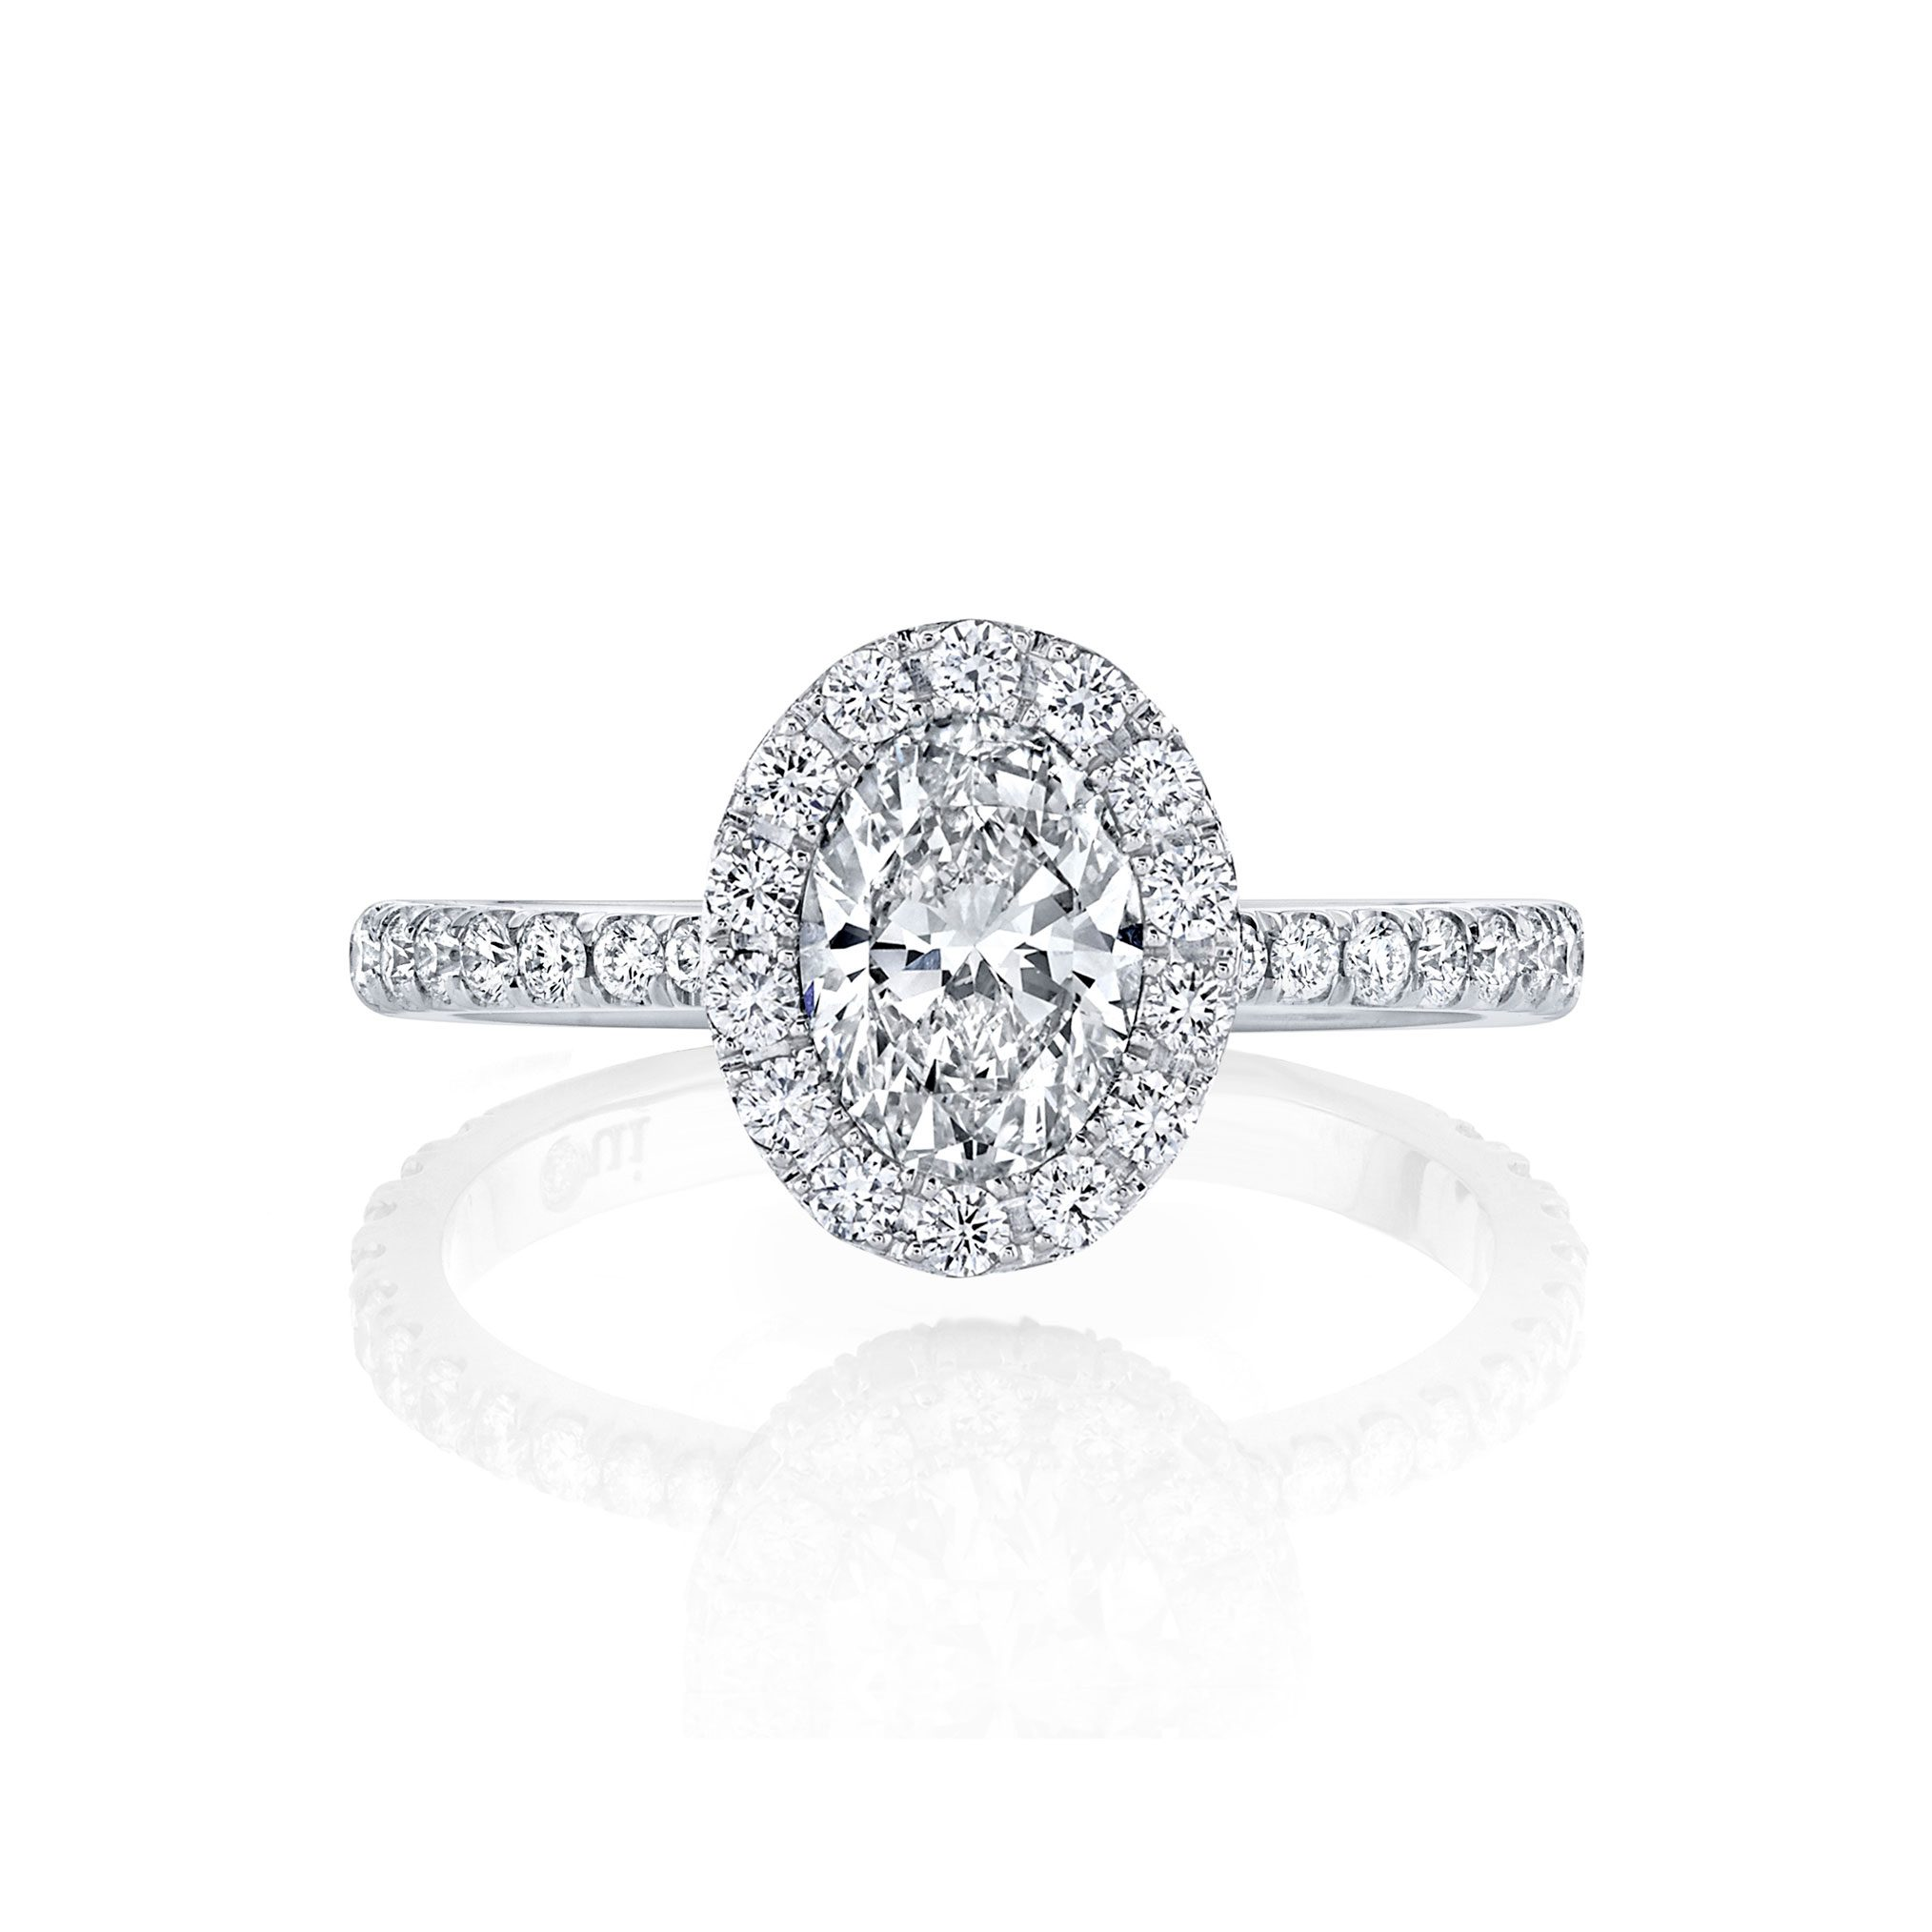 Eloise Oval Seamless Halo® Engagement Ring with diamond pavé in 18k White Gold Front View by Oui by Jean Dousset